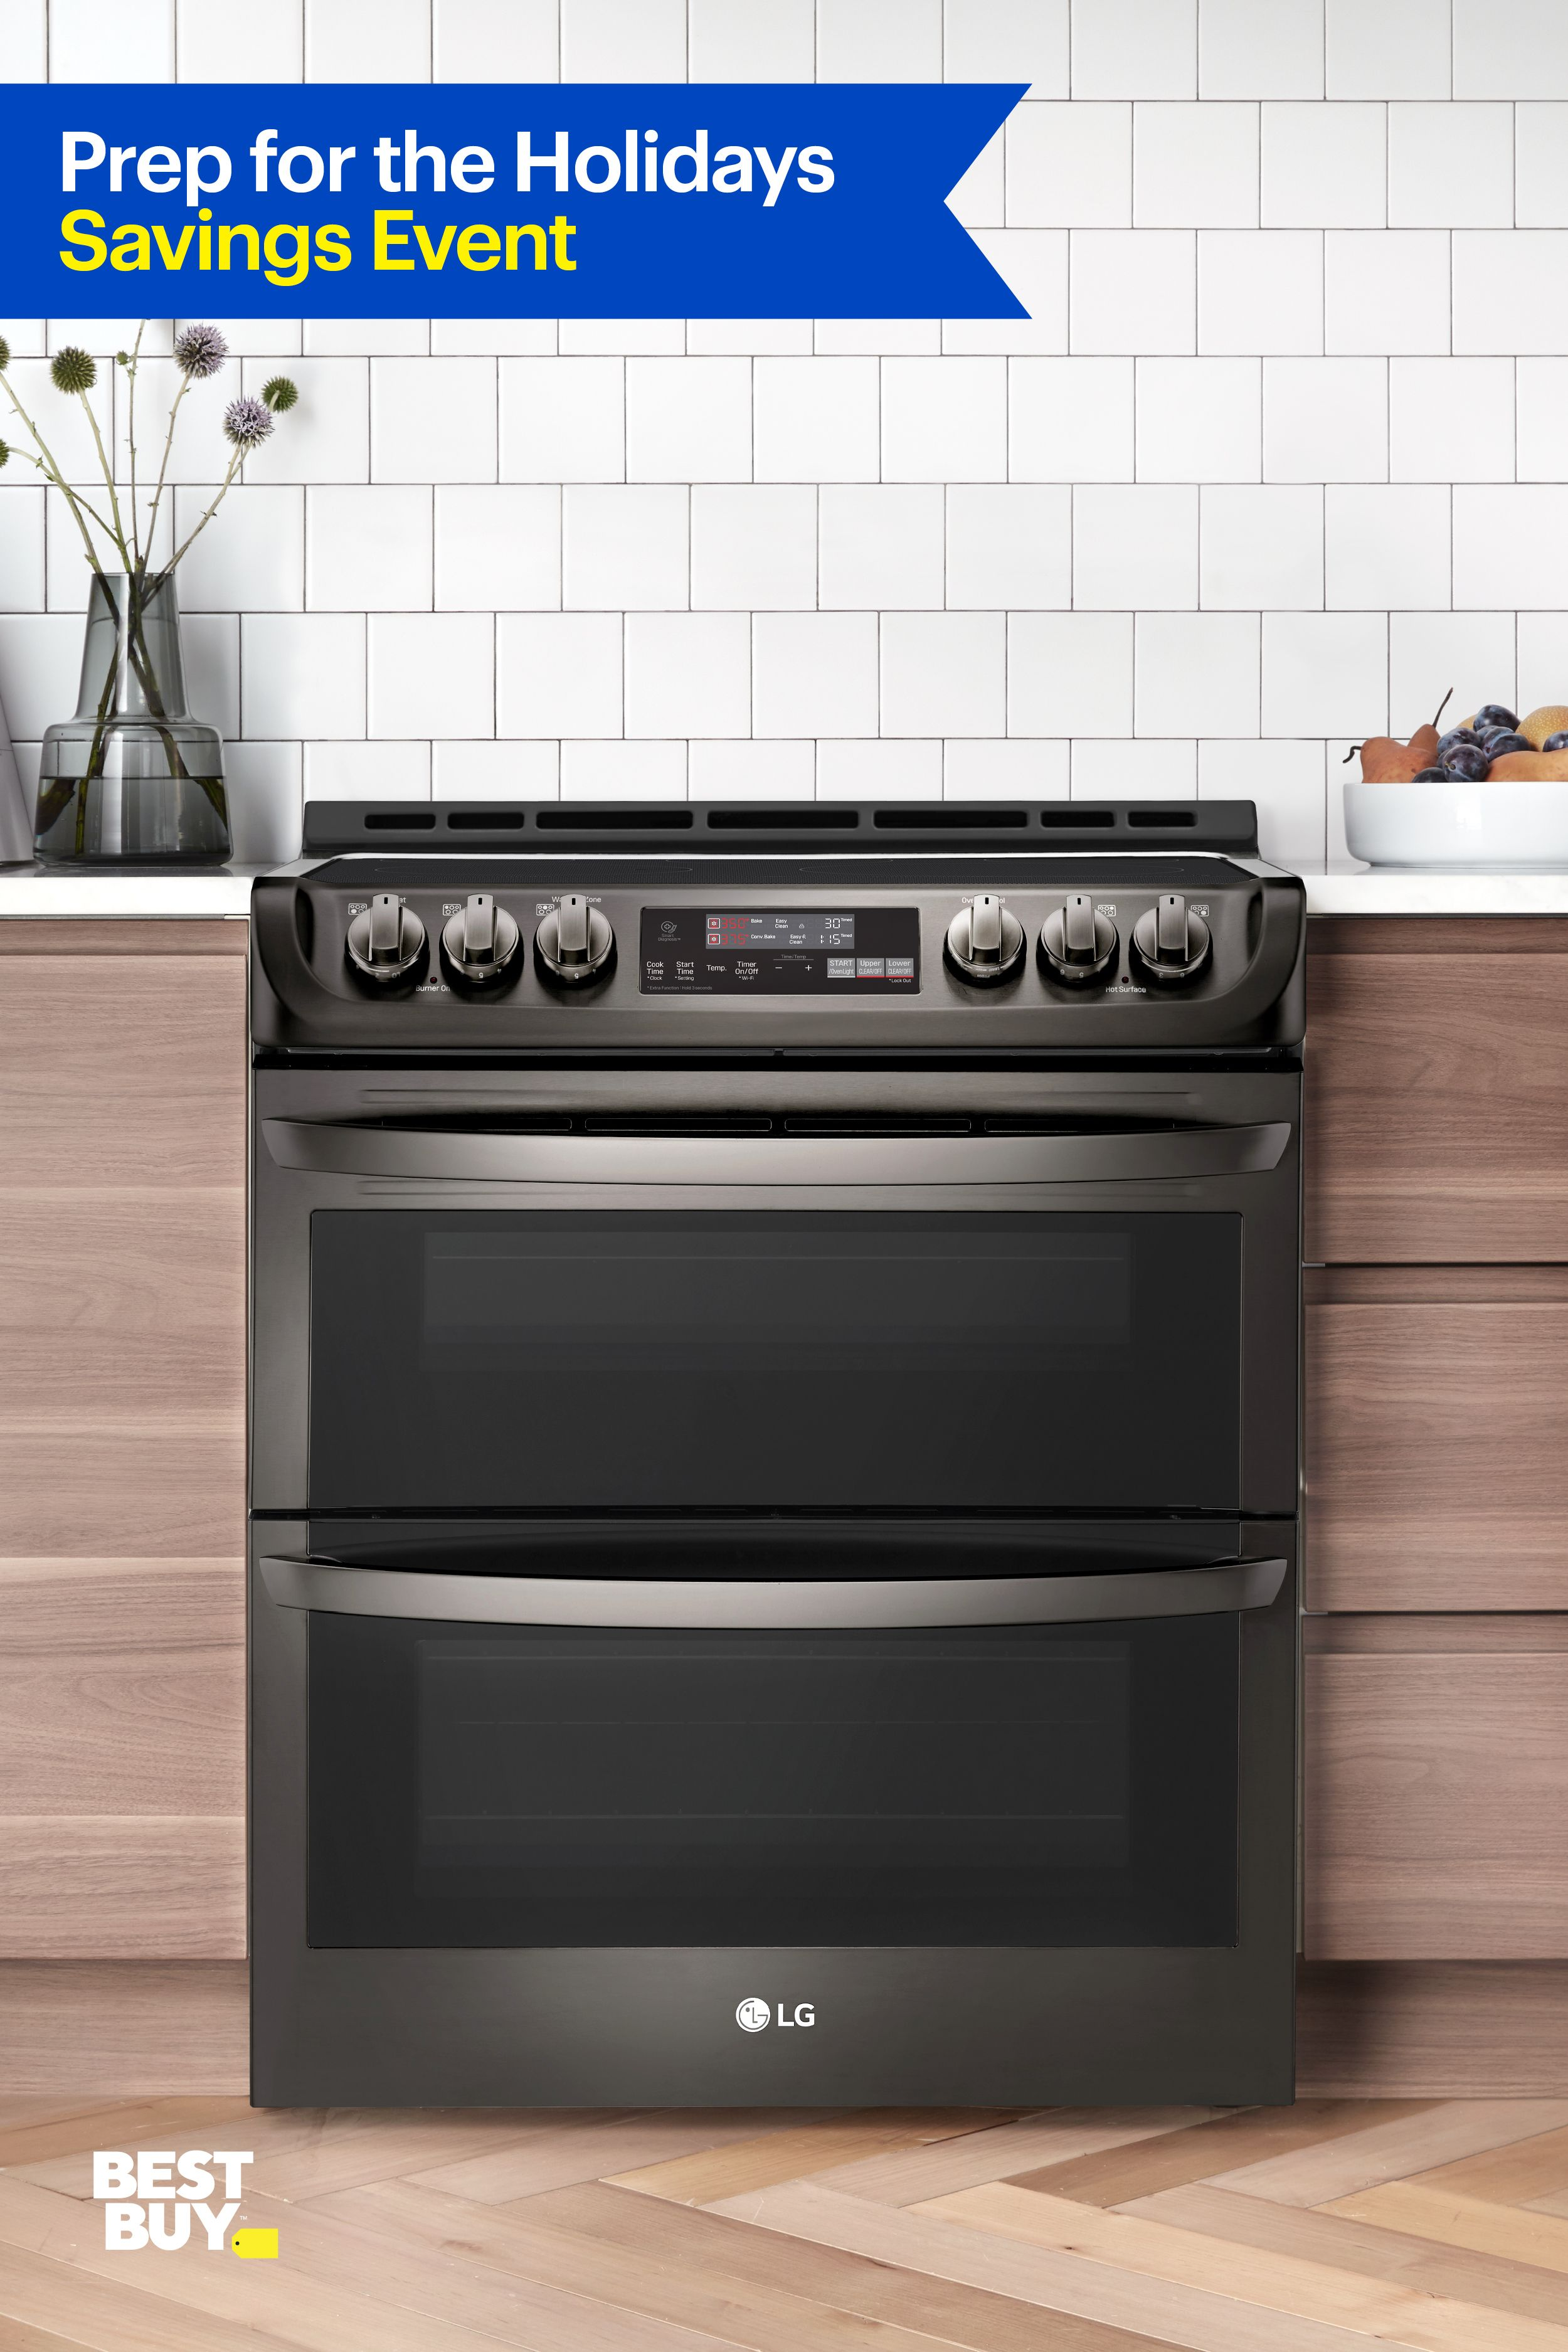 Finish Your Holiday Cooking Faster With This Lg Probake Convection Double Oven It Bakes At Two Different Temps So Kitchen Ideals Kitchen Redo Kitchen Remodel